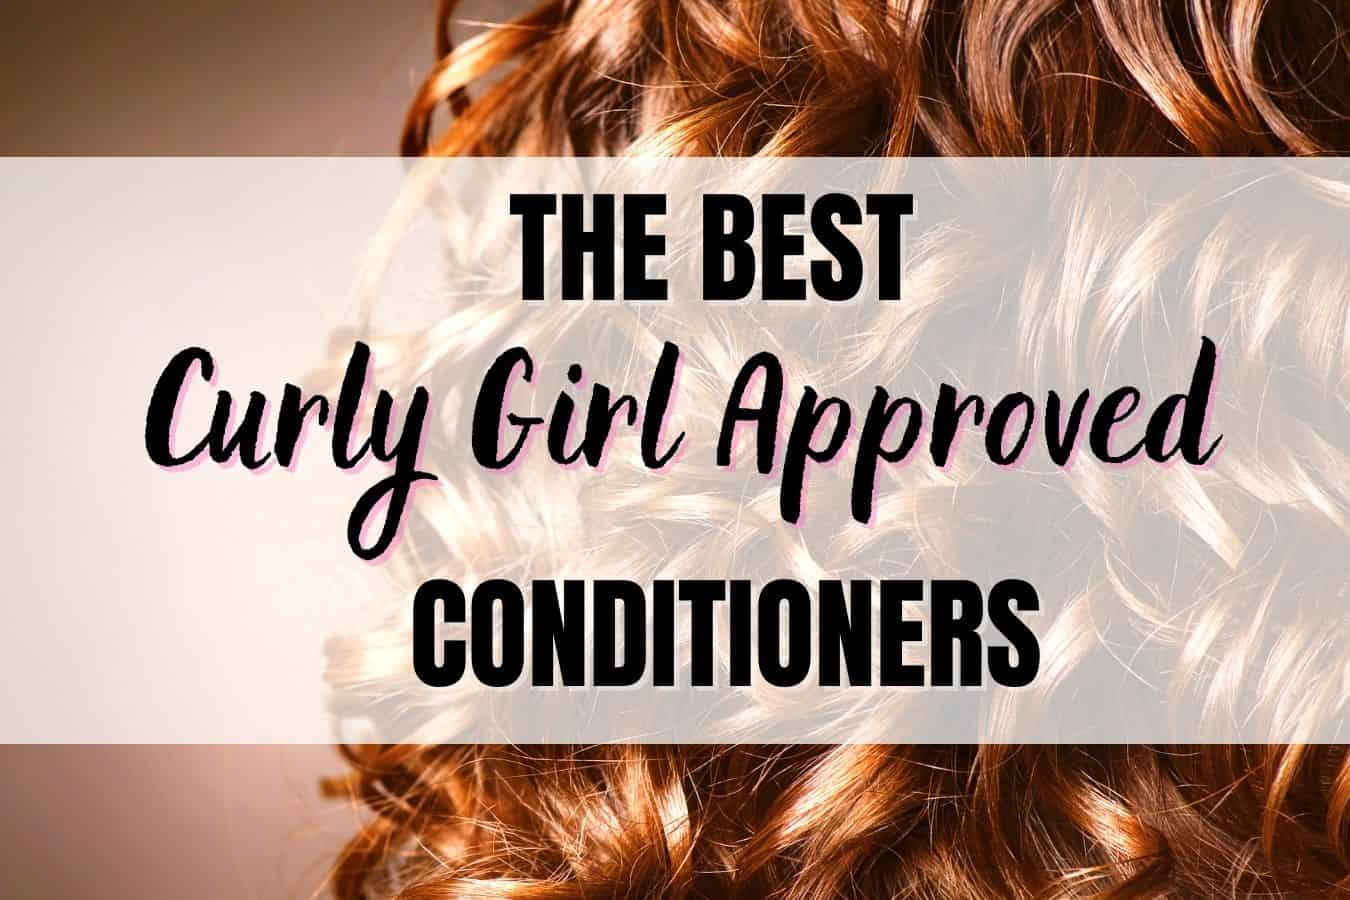 Curly Girl Approved Conditioners